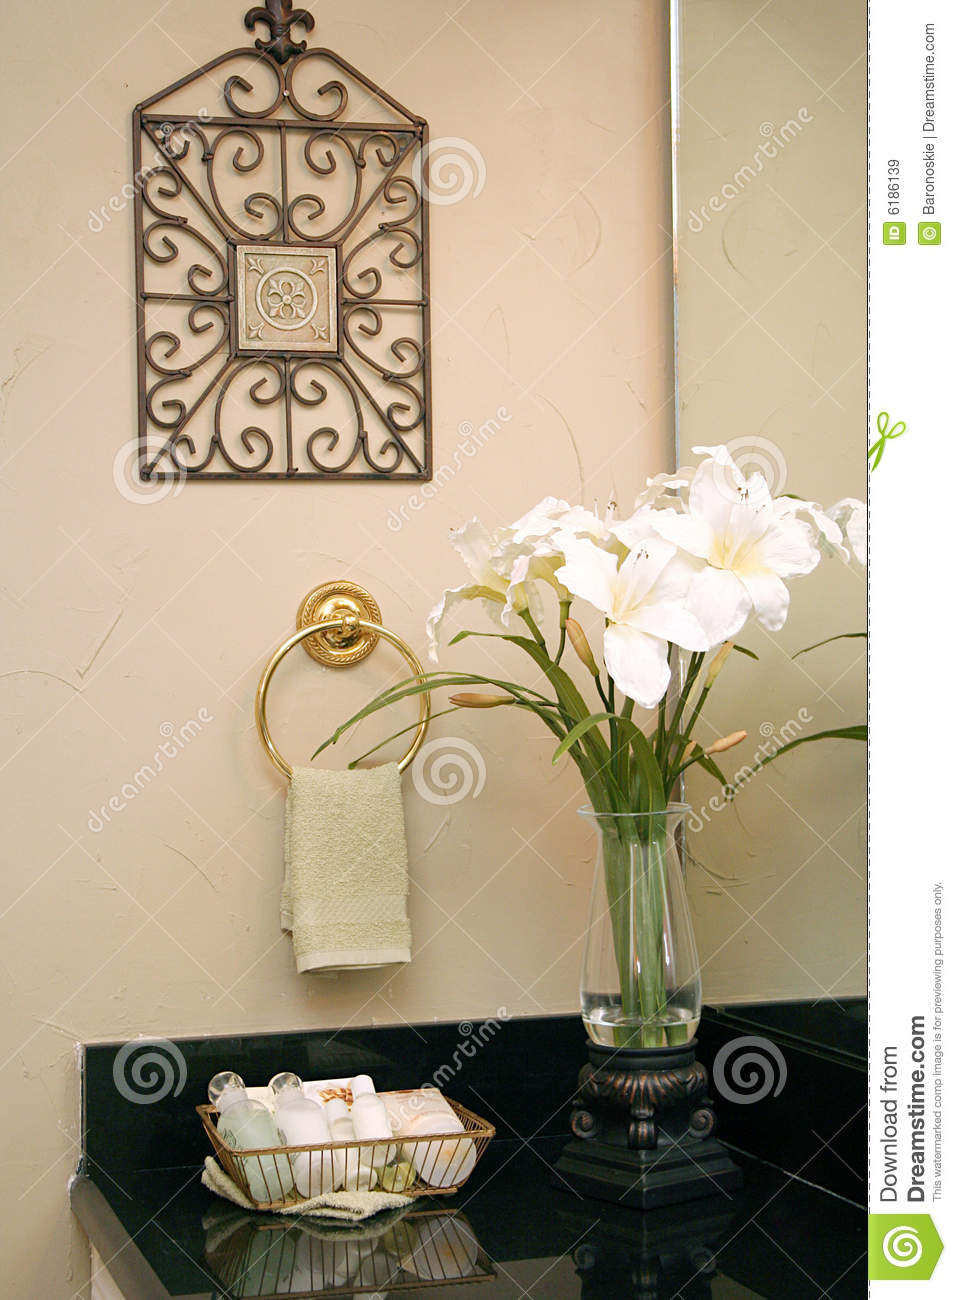 bathroom decor royalty free stock images - image: 6186139